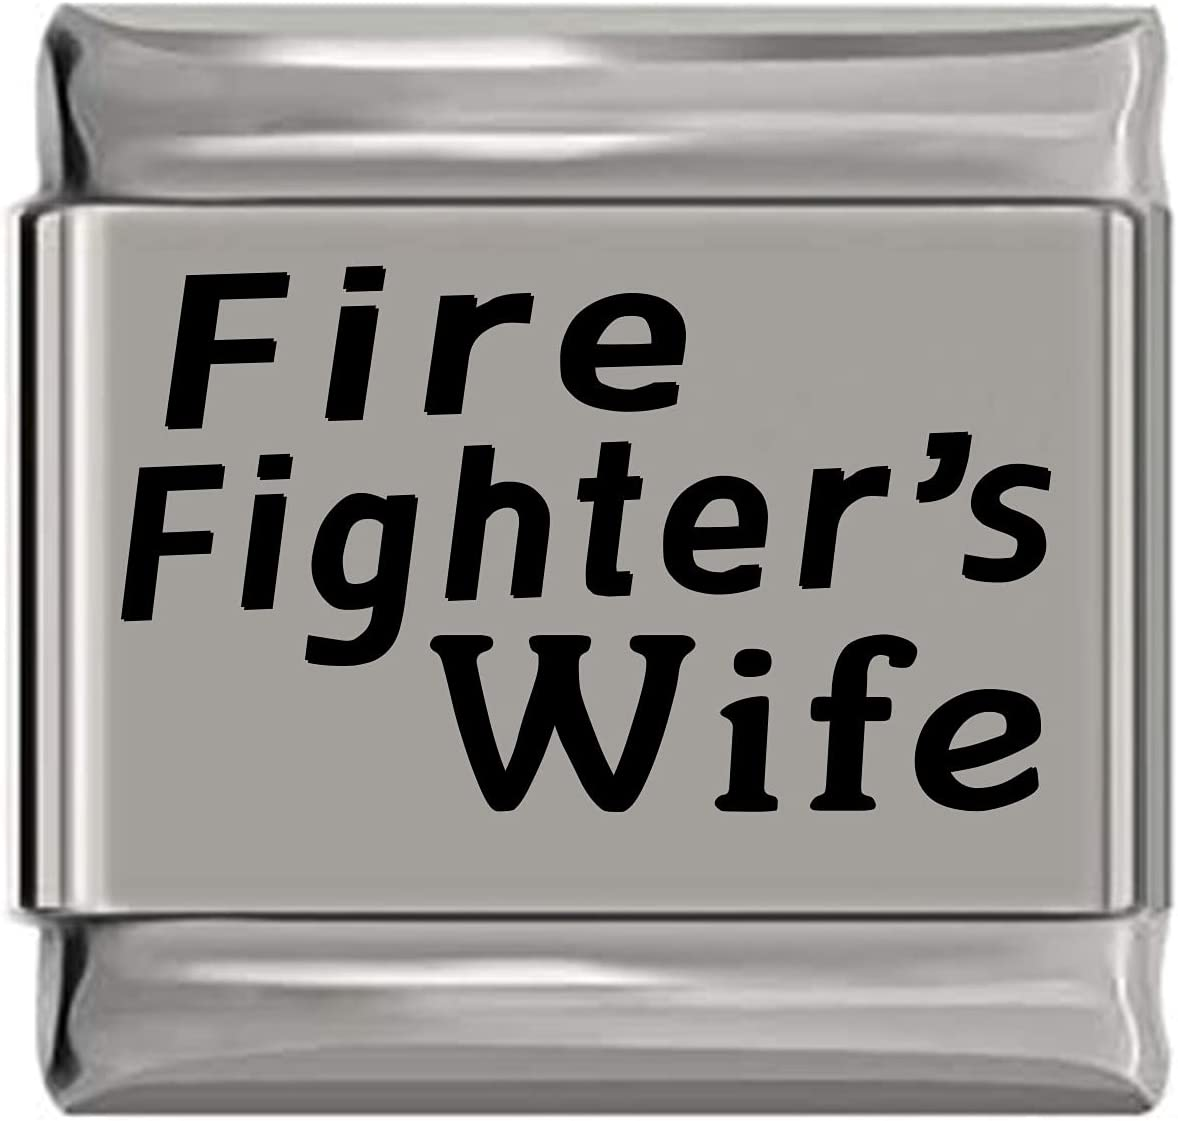 Fire Fighter's Wife Laser Sale Special Price Charm Italian cheap Engraved